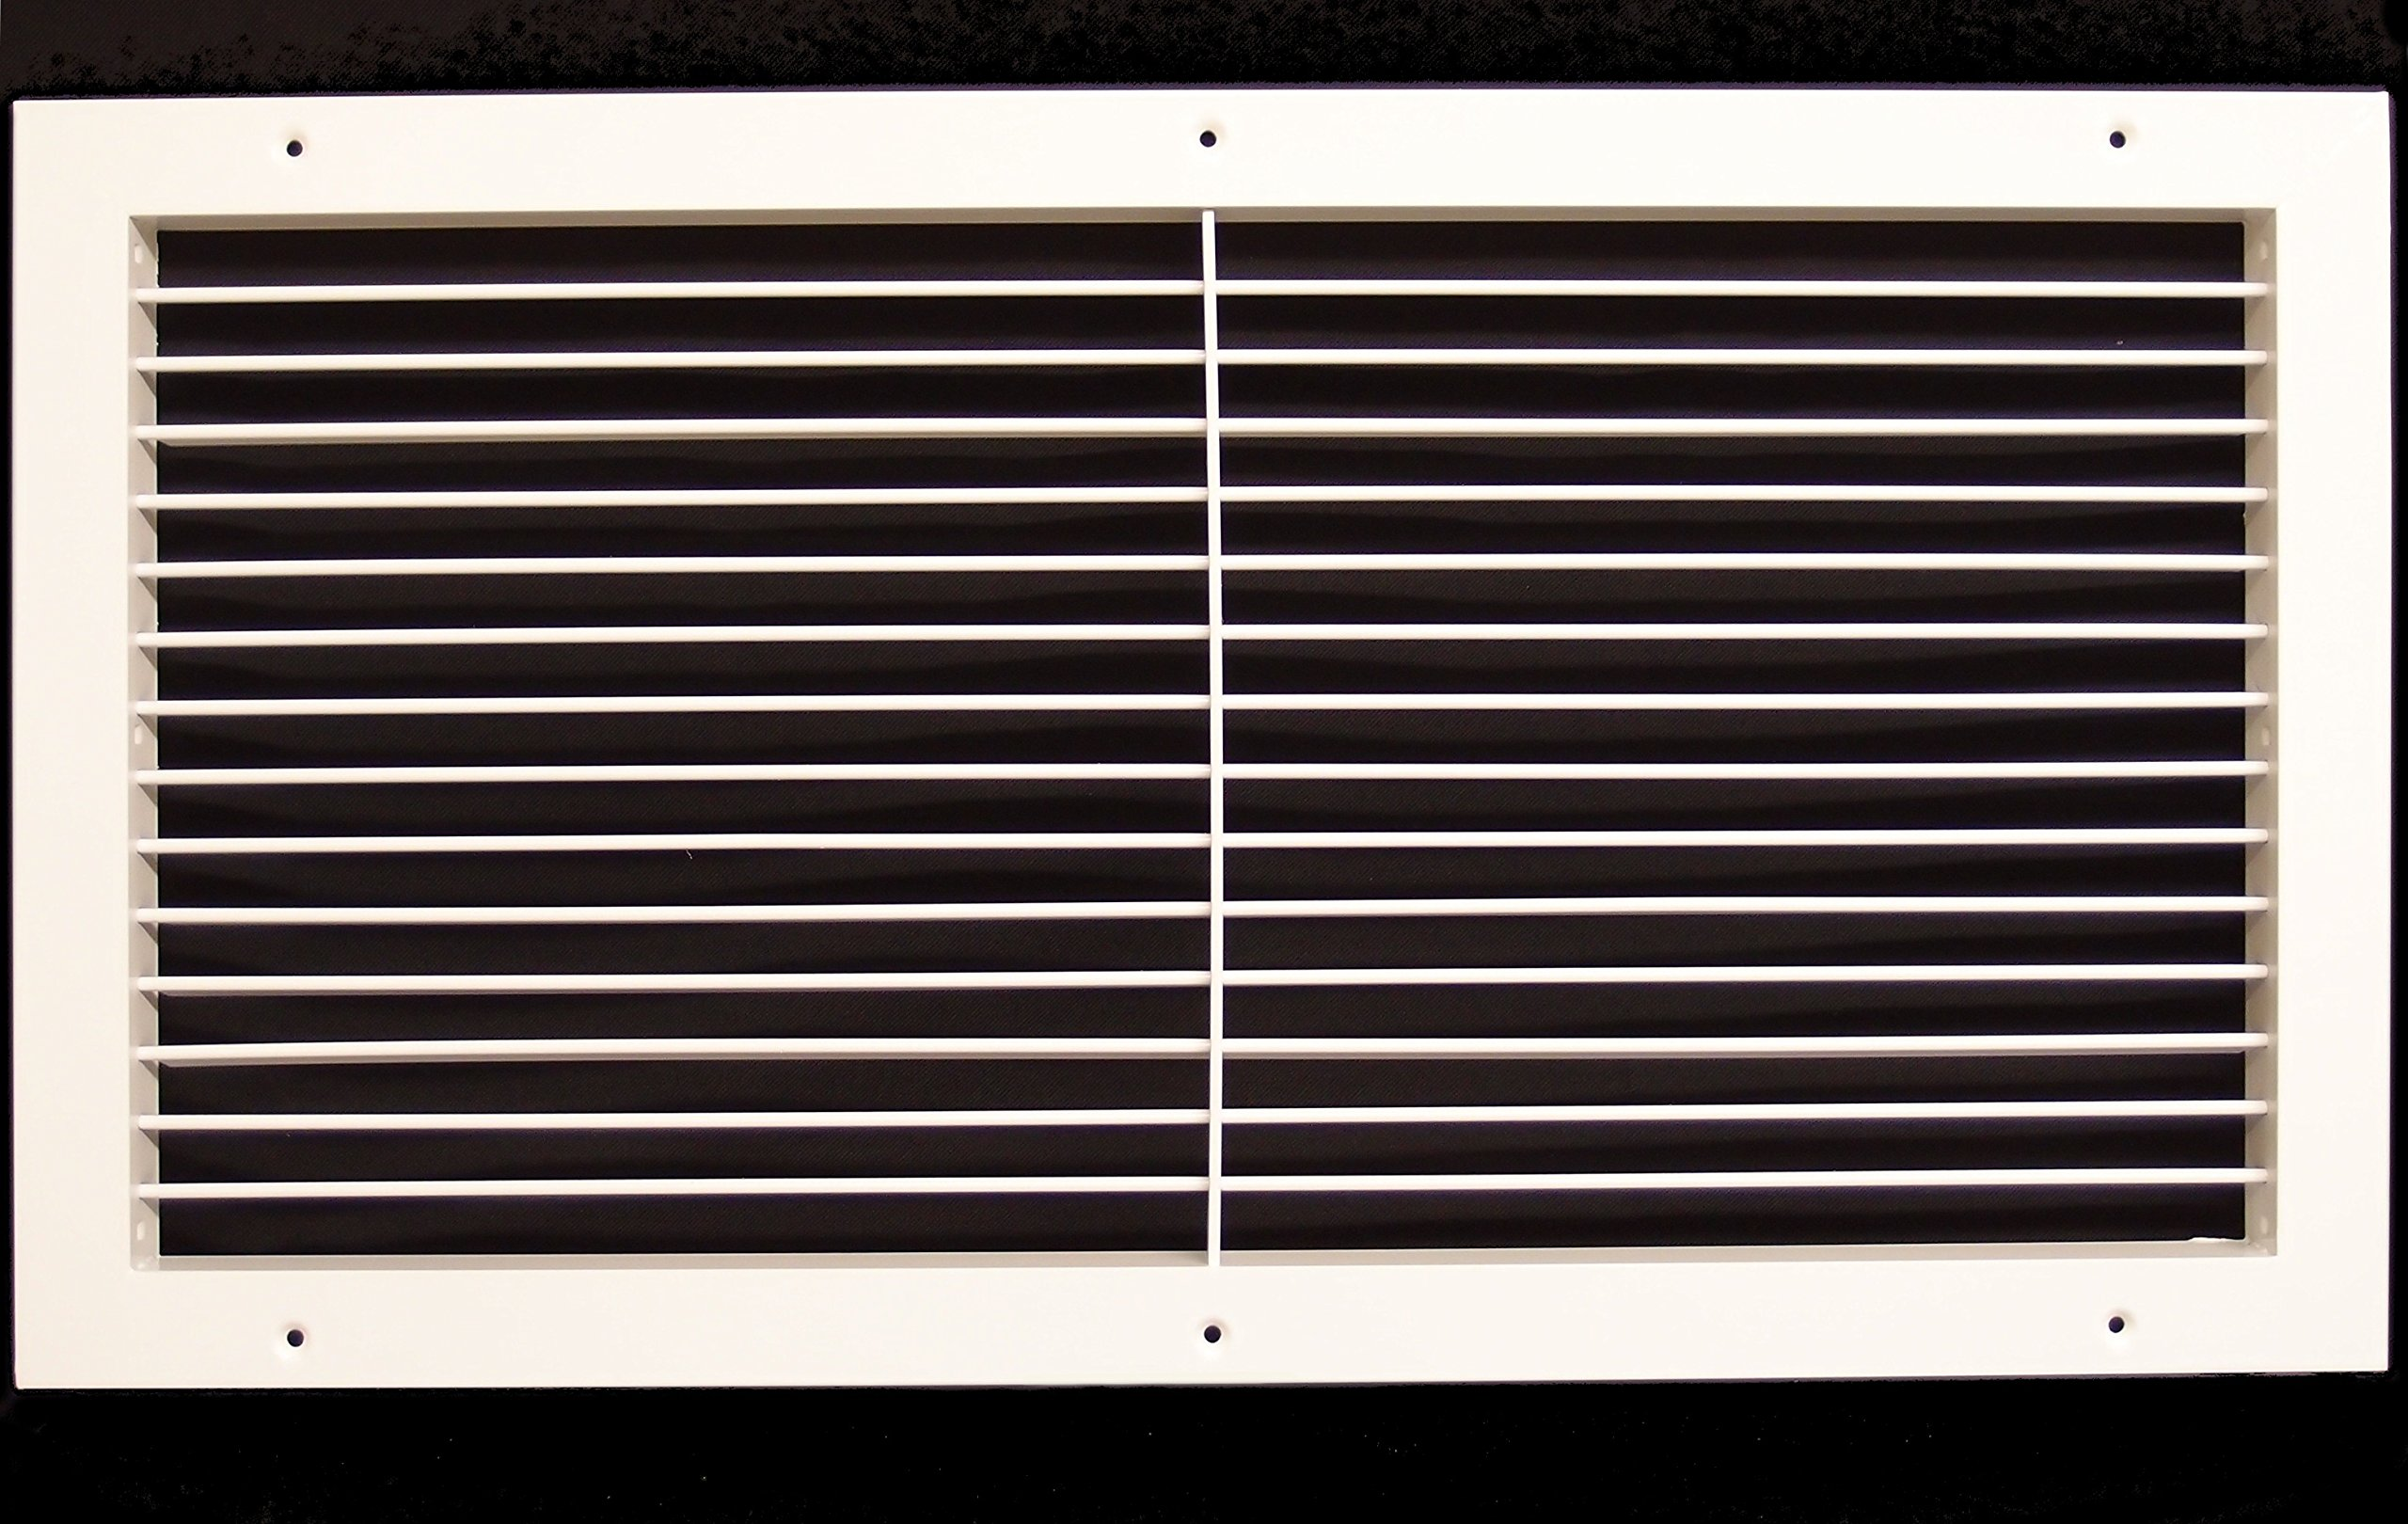 24''w X 12''h Aluminum Adjustable Return/Supply HVAC Air Grille - Full Control Horizontal Airflow Direction - Vent Duct Cover - Wide Front End Overlap - Single Deflection